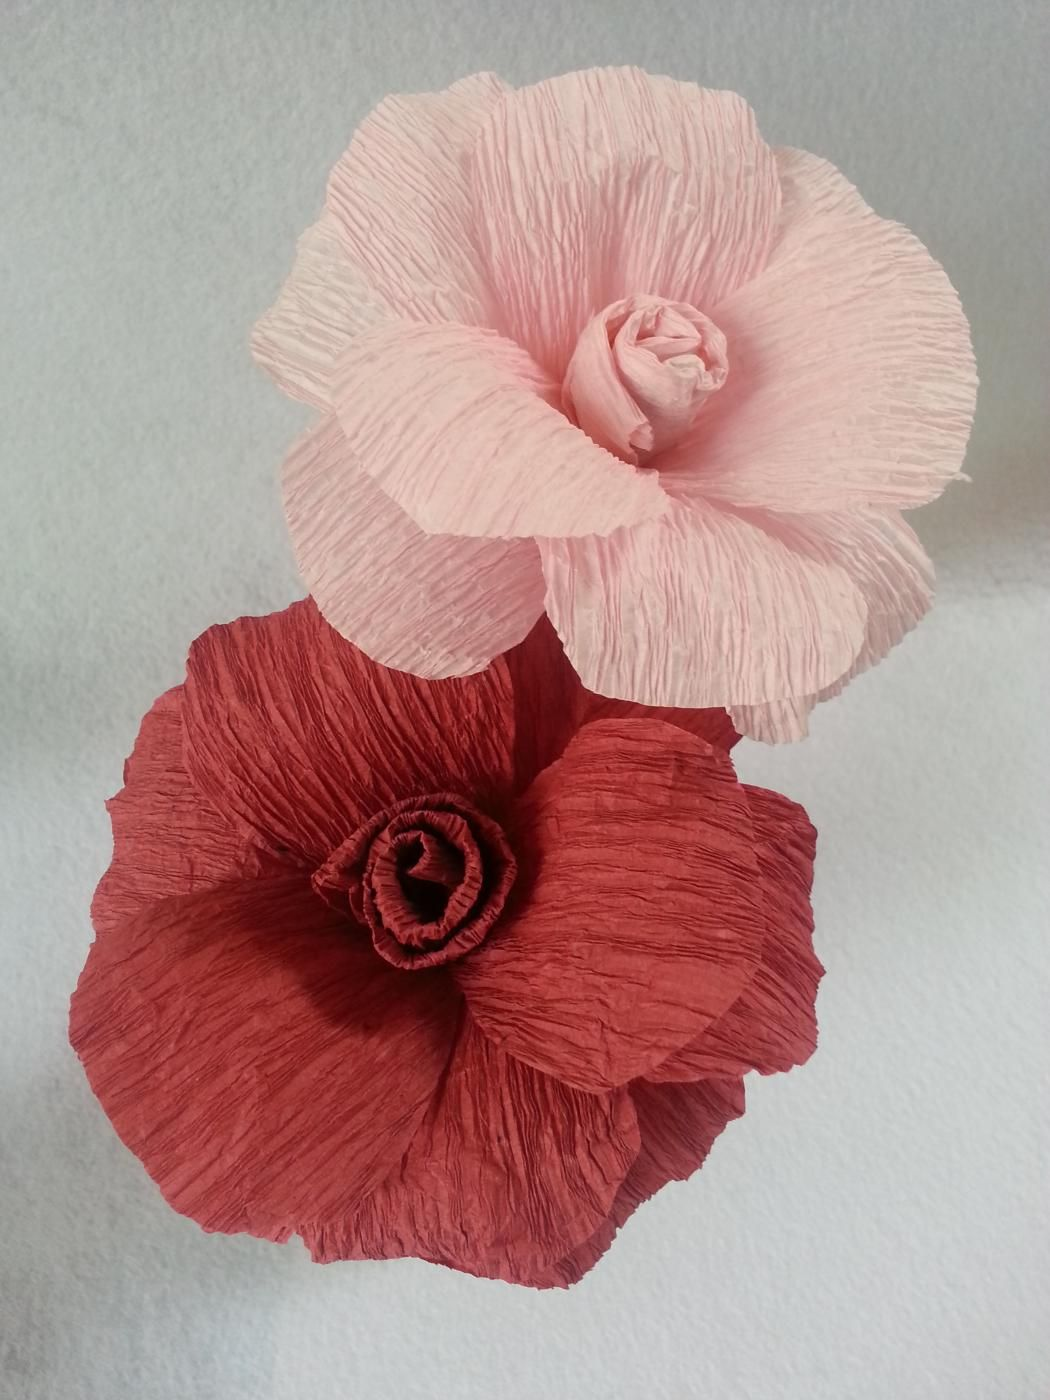 How To Make Crepe Paper Flowers Dyi Pinterest Paper Flowers